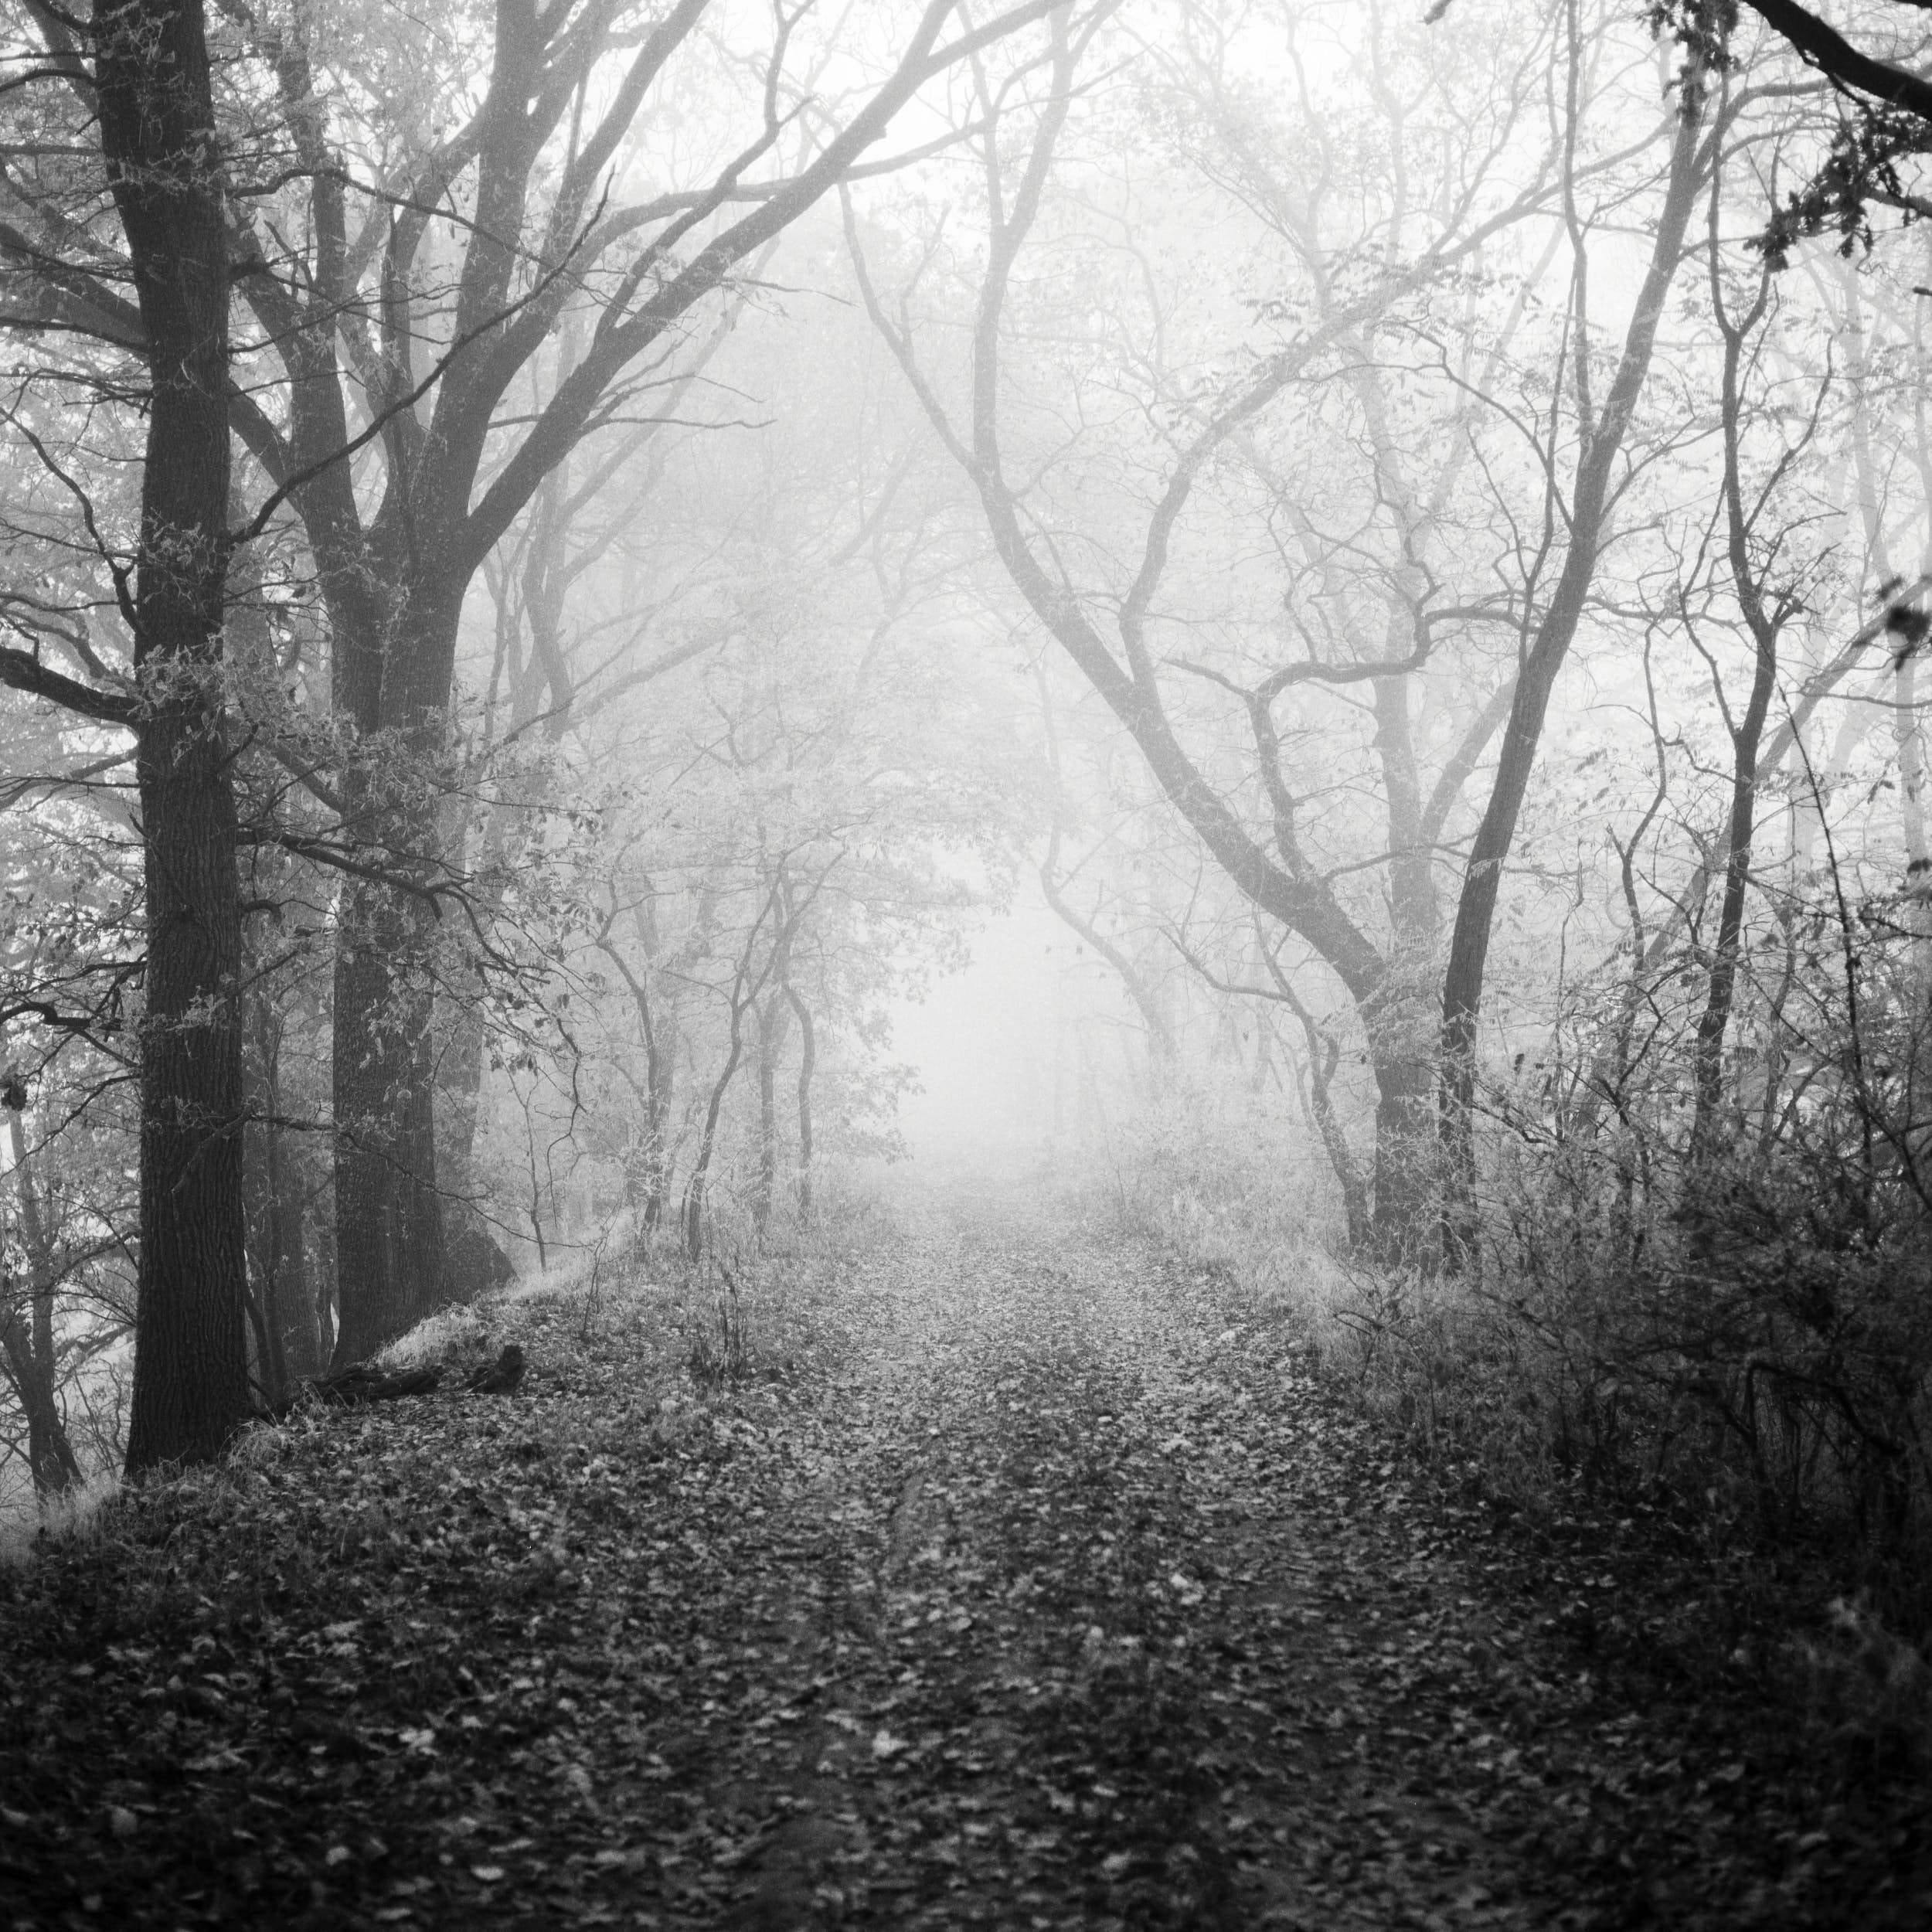 Fine art black and white photography: misty forest path with beautiful trees.